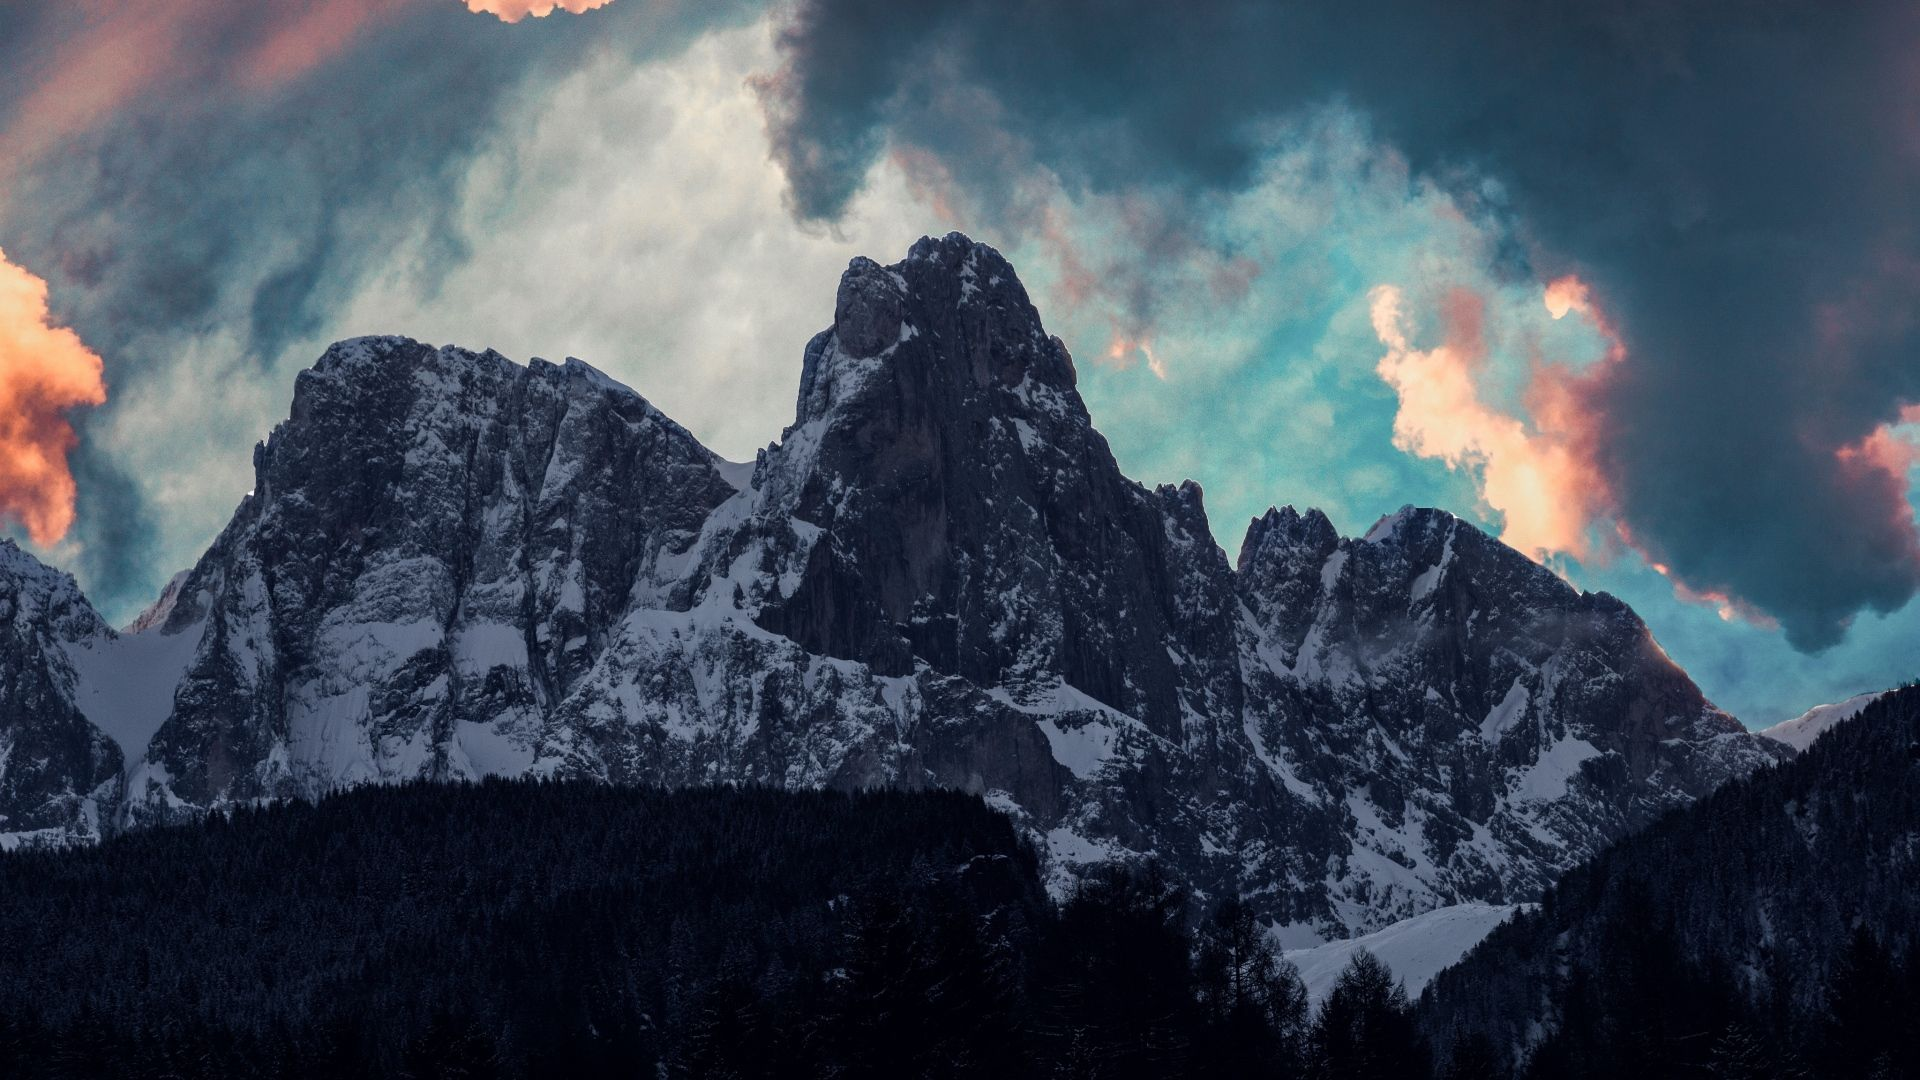 Download Wallpaper 1920x1080 Mountains, Clouds, Trees